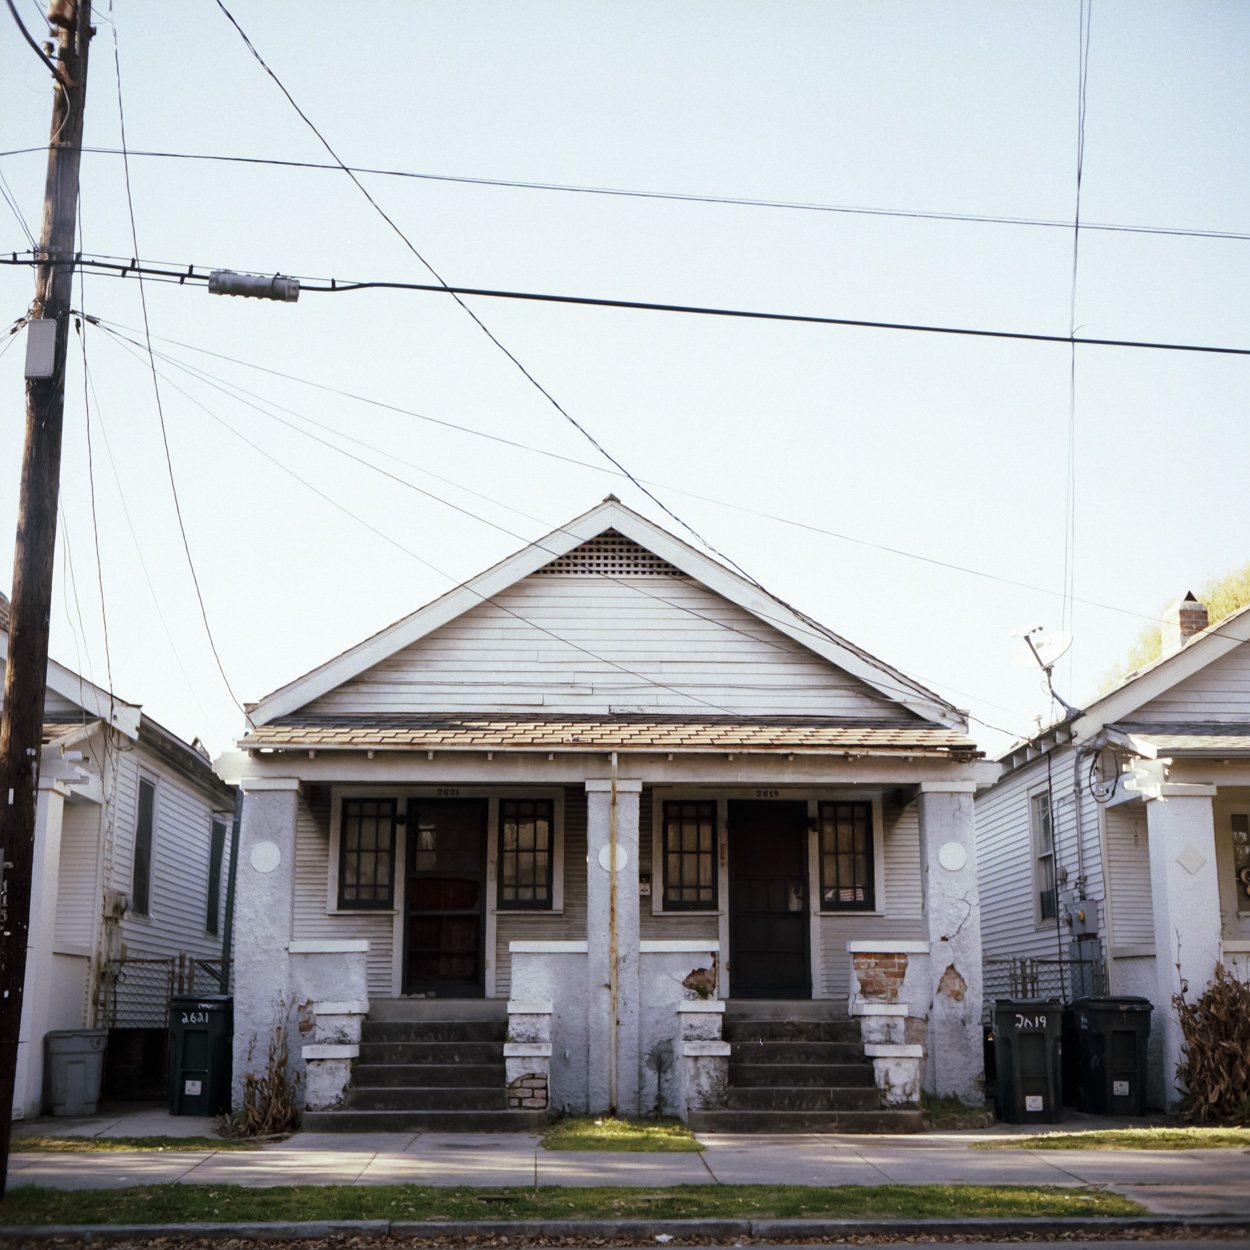 A typical house in NOLA